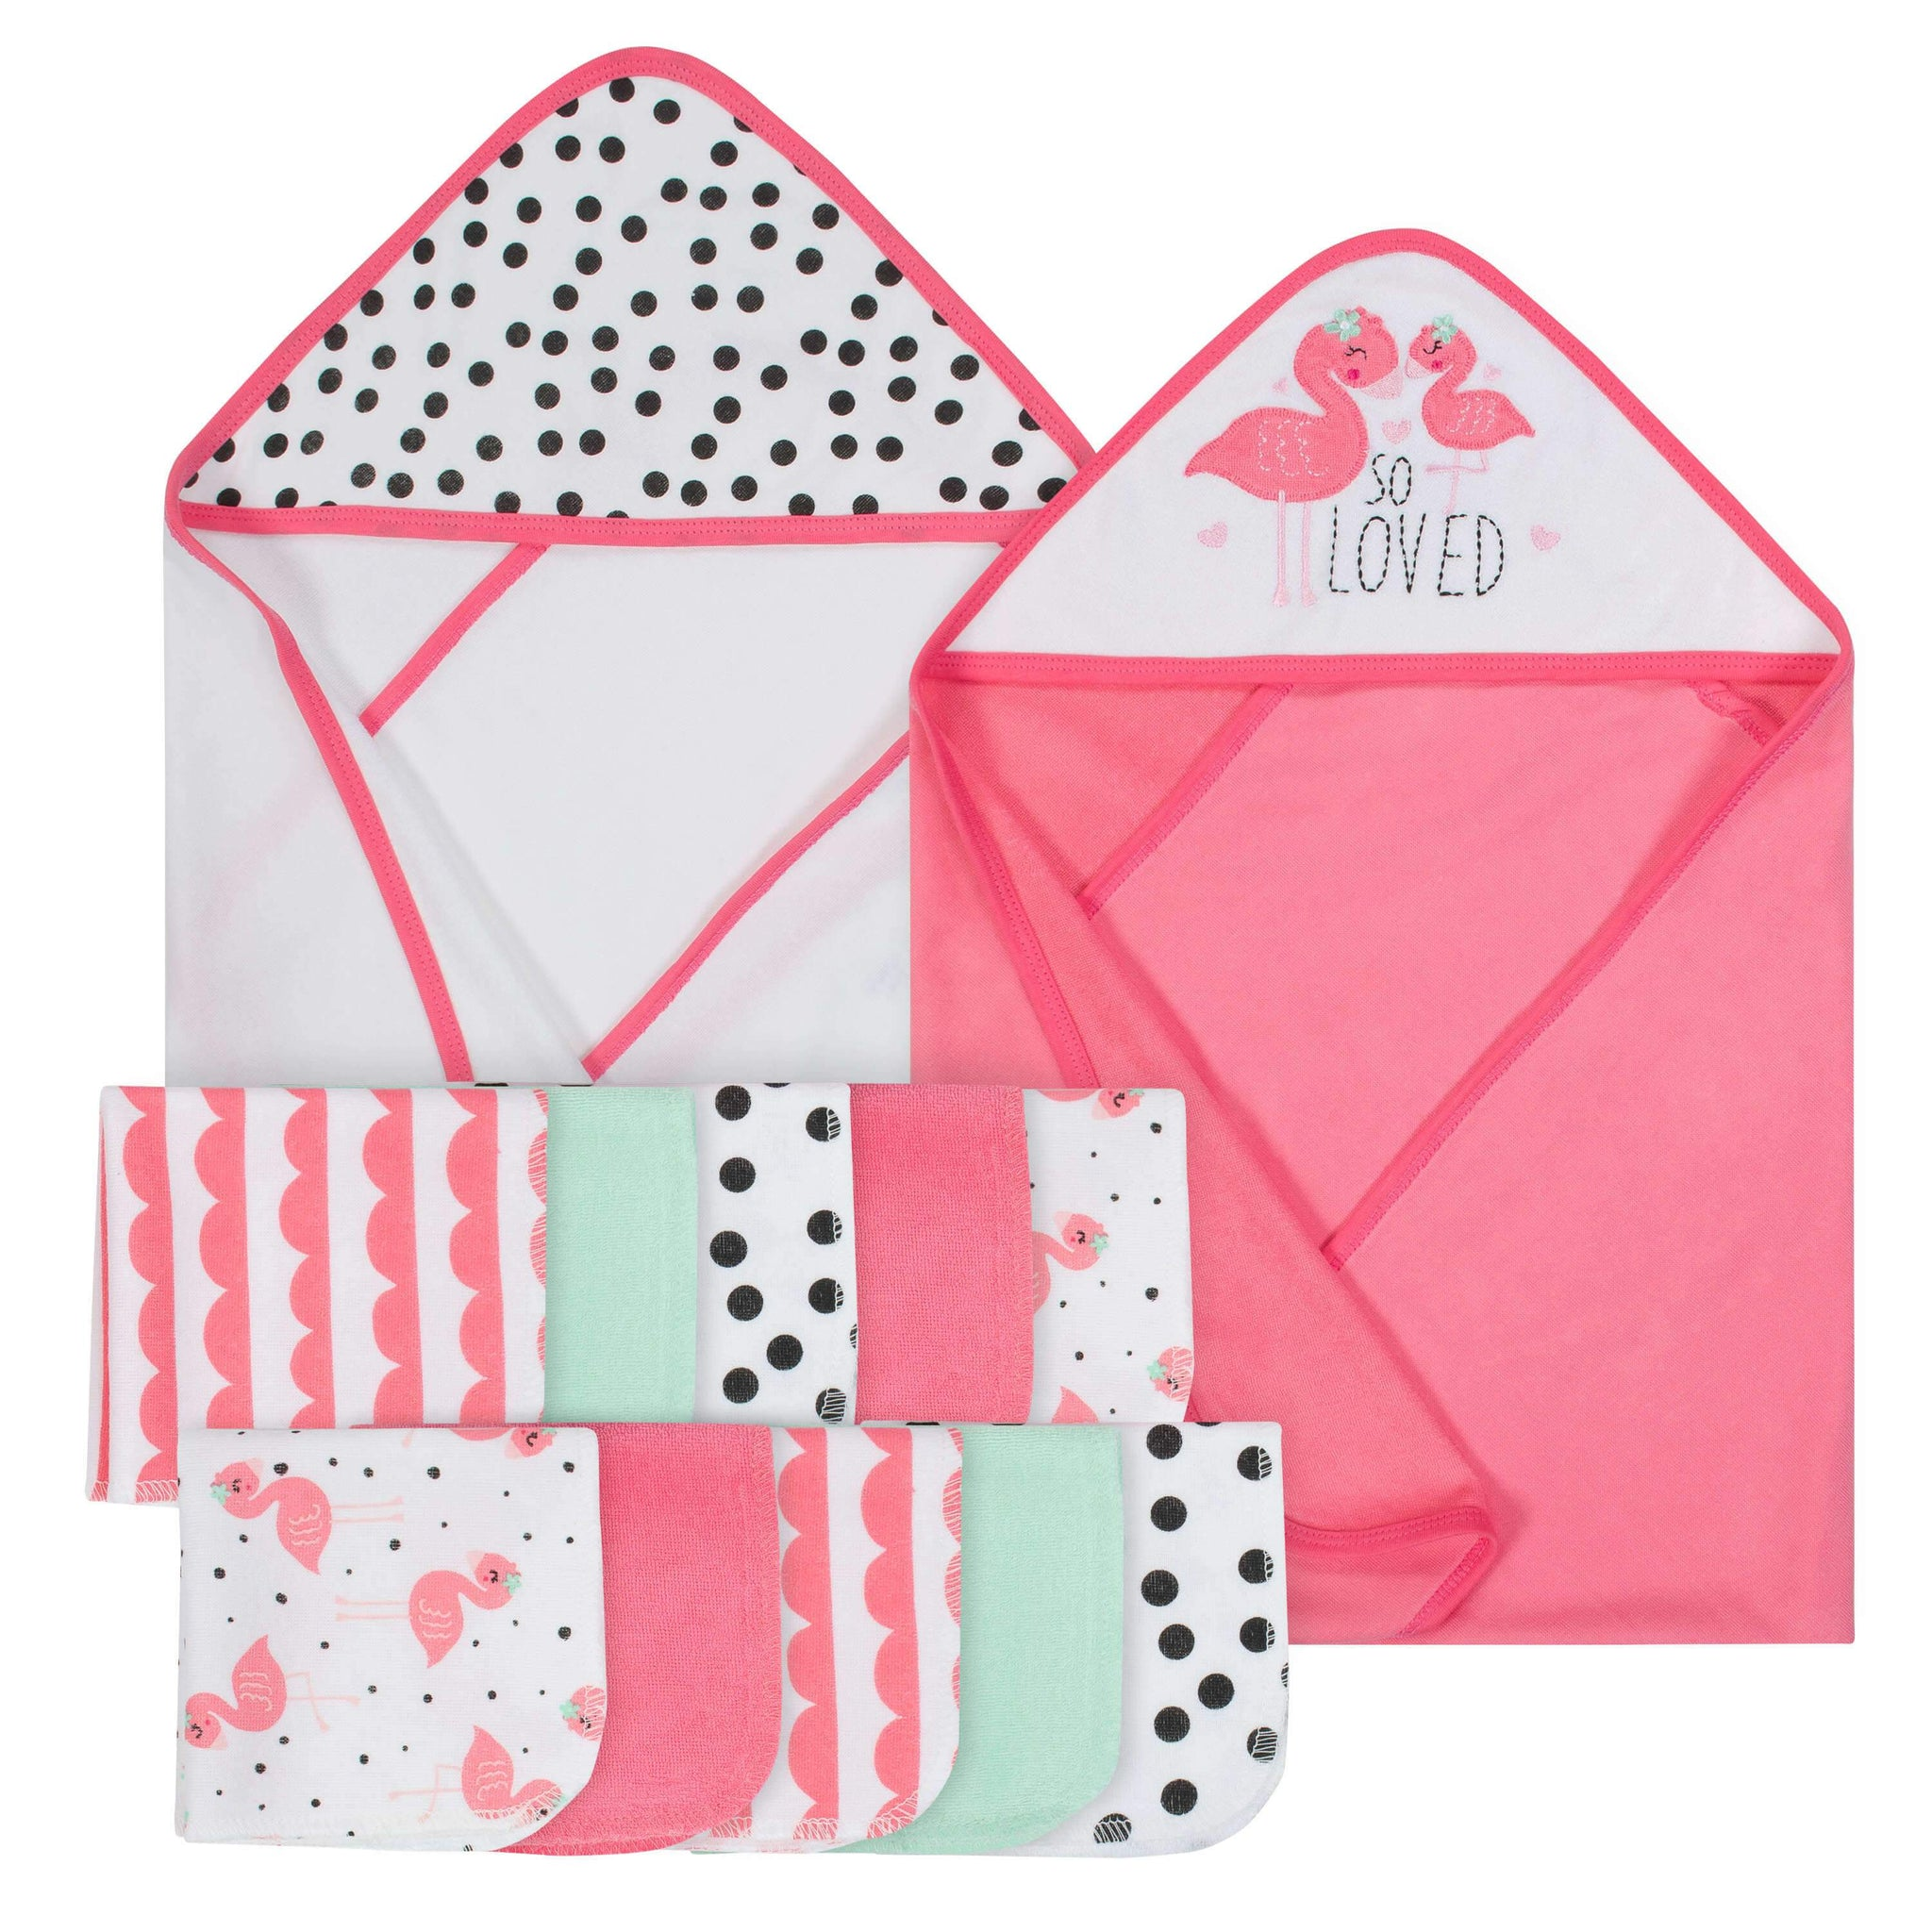 12-Piece Girls Terry Hooded Towel and Washcloth Set - Flamingo